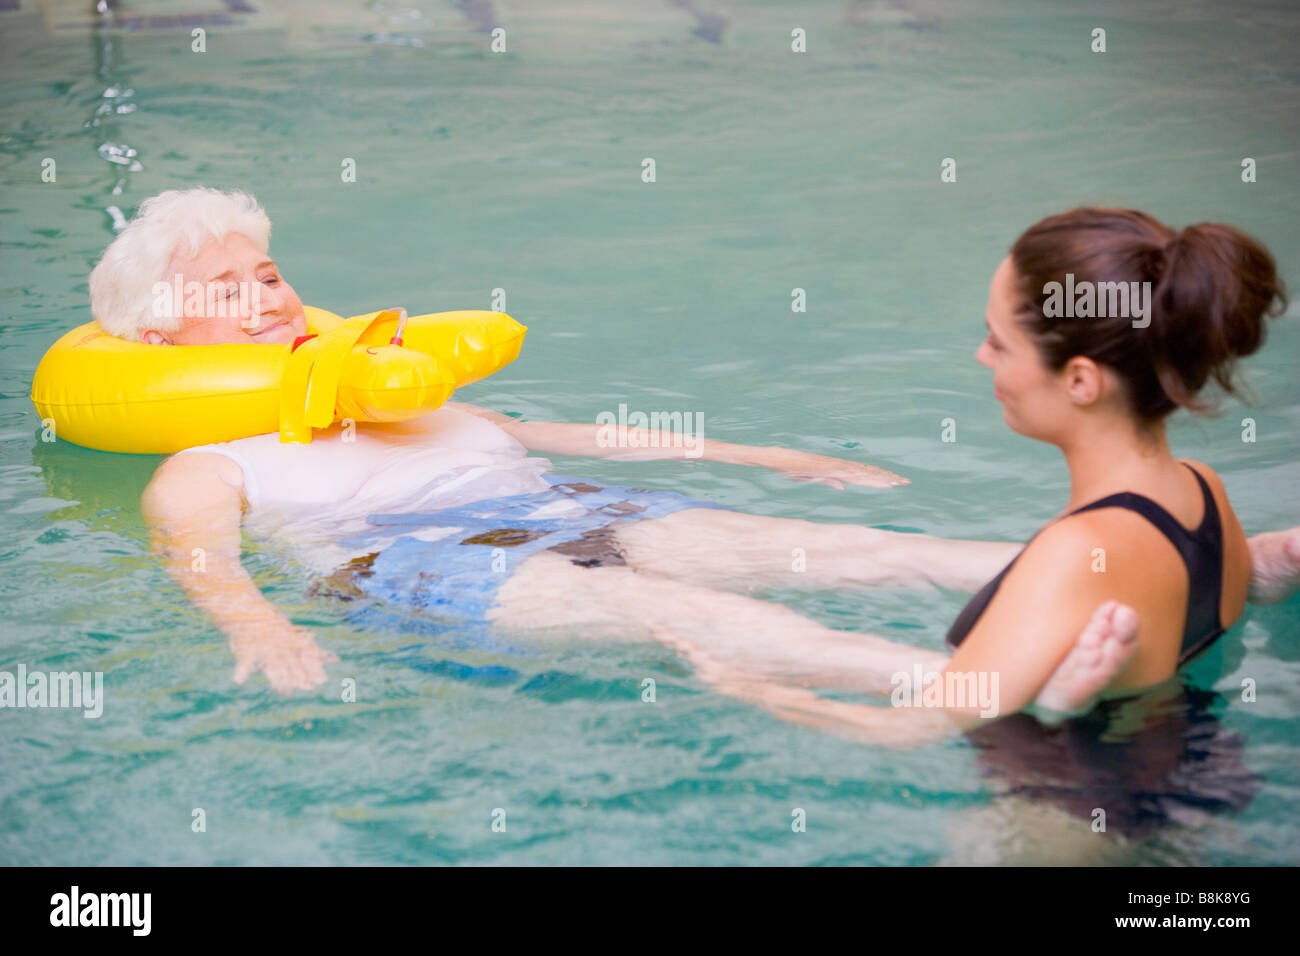 Instructor And Elderly Patient Undergoing Water Therapy Stock Photo